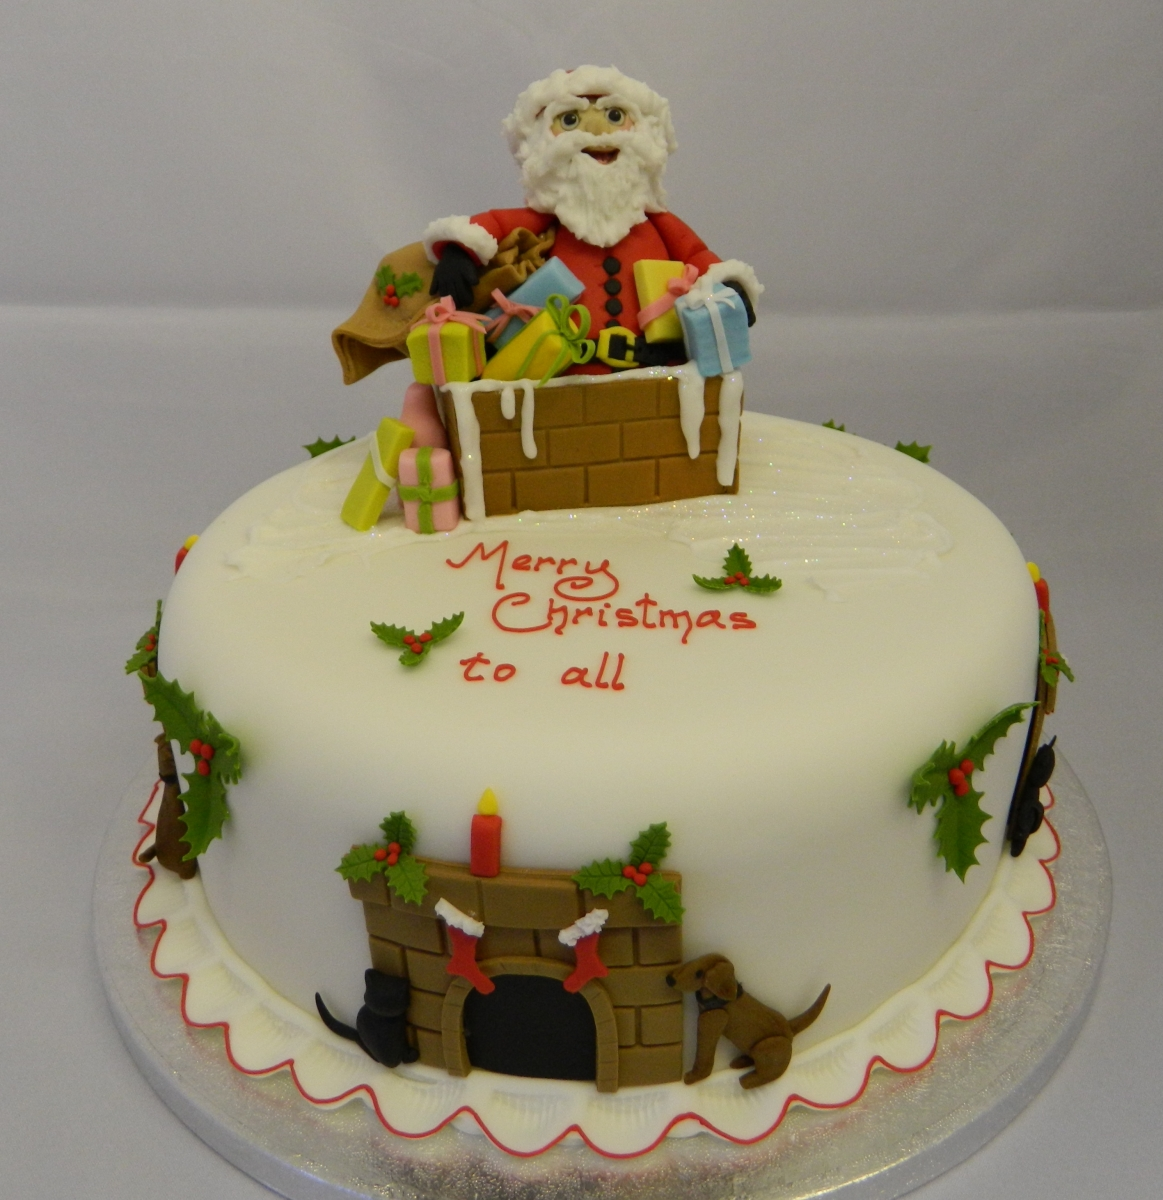 Christmas Cake - Santa in Chimney